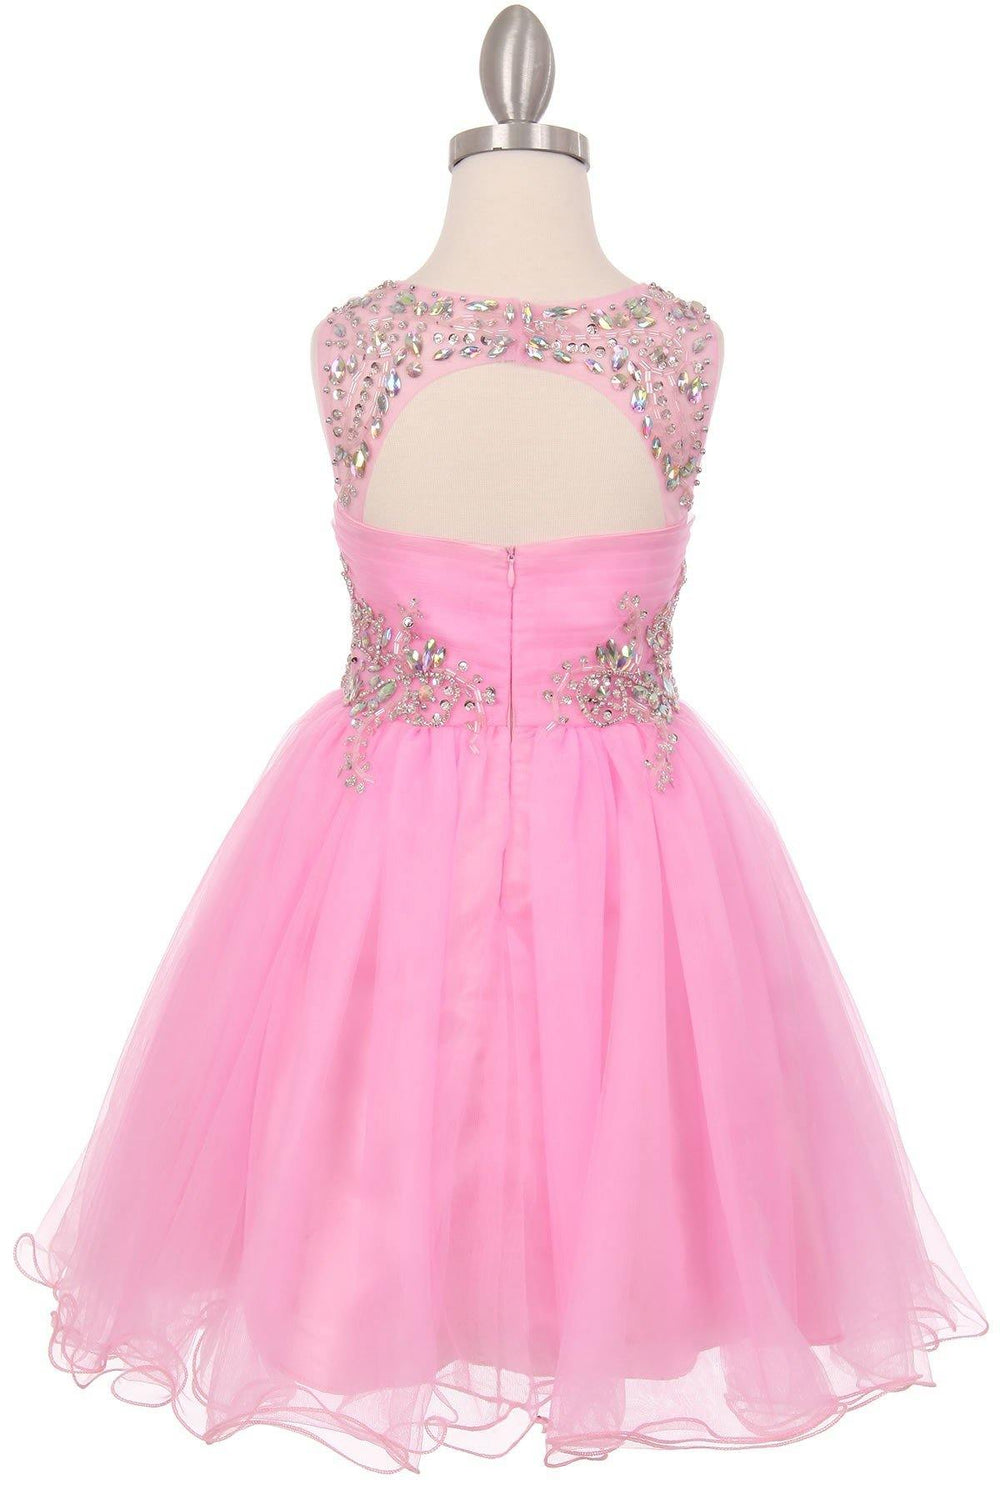 Sleeveless Flower Girl Dress with Rhinestone Bodice - The Dress Outlet